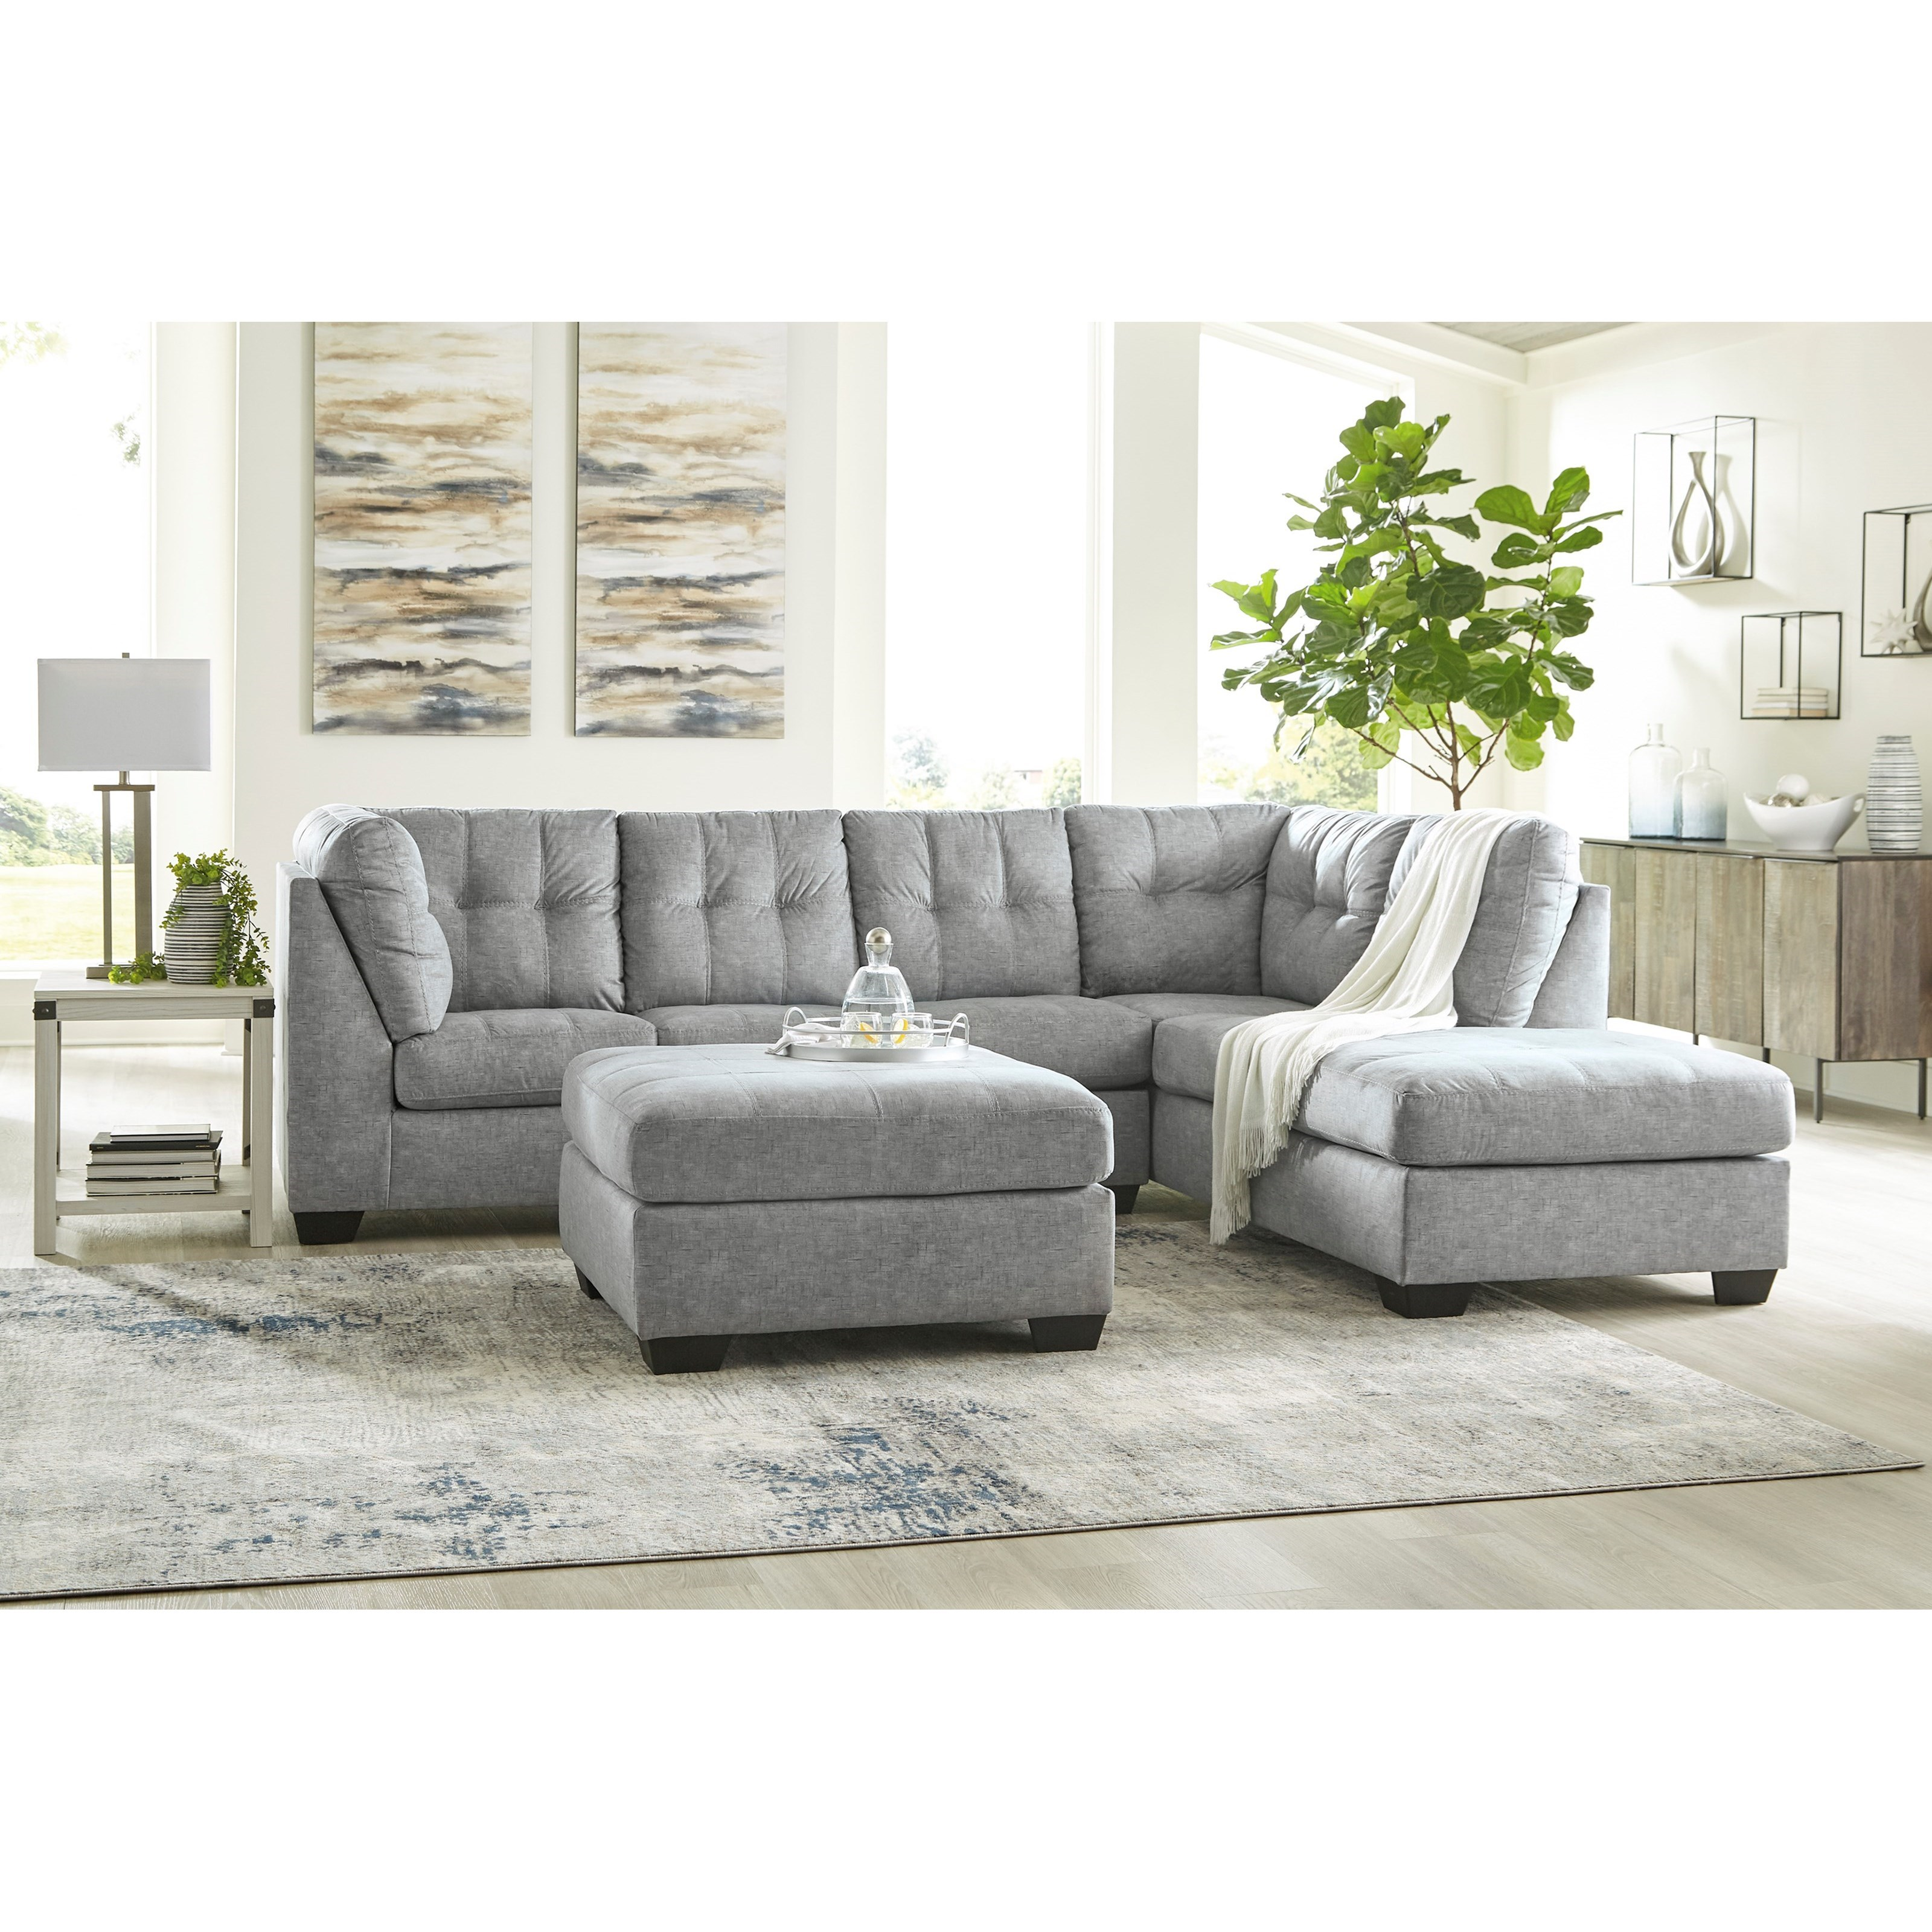 Falkirk Living Room Group by Benchcraft at Household Furniture